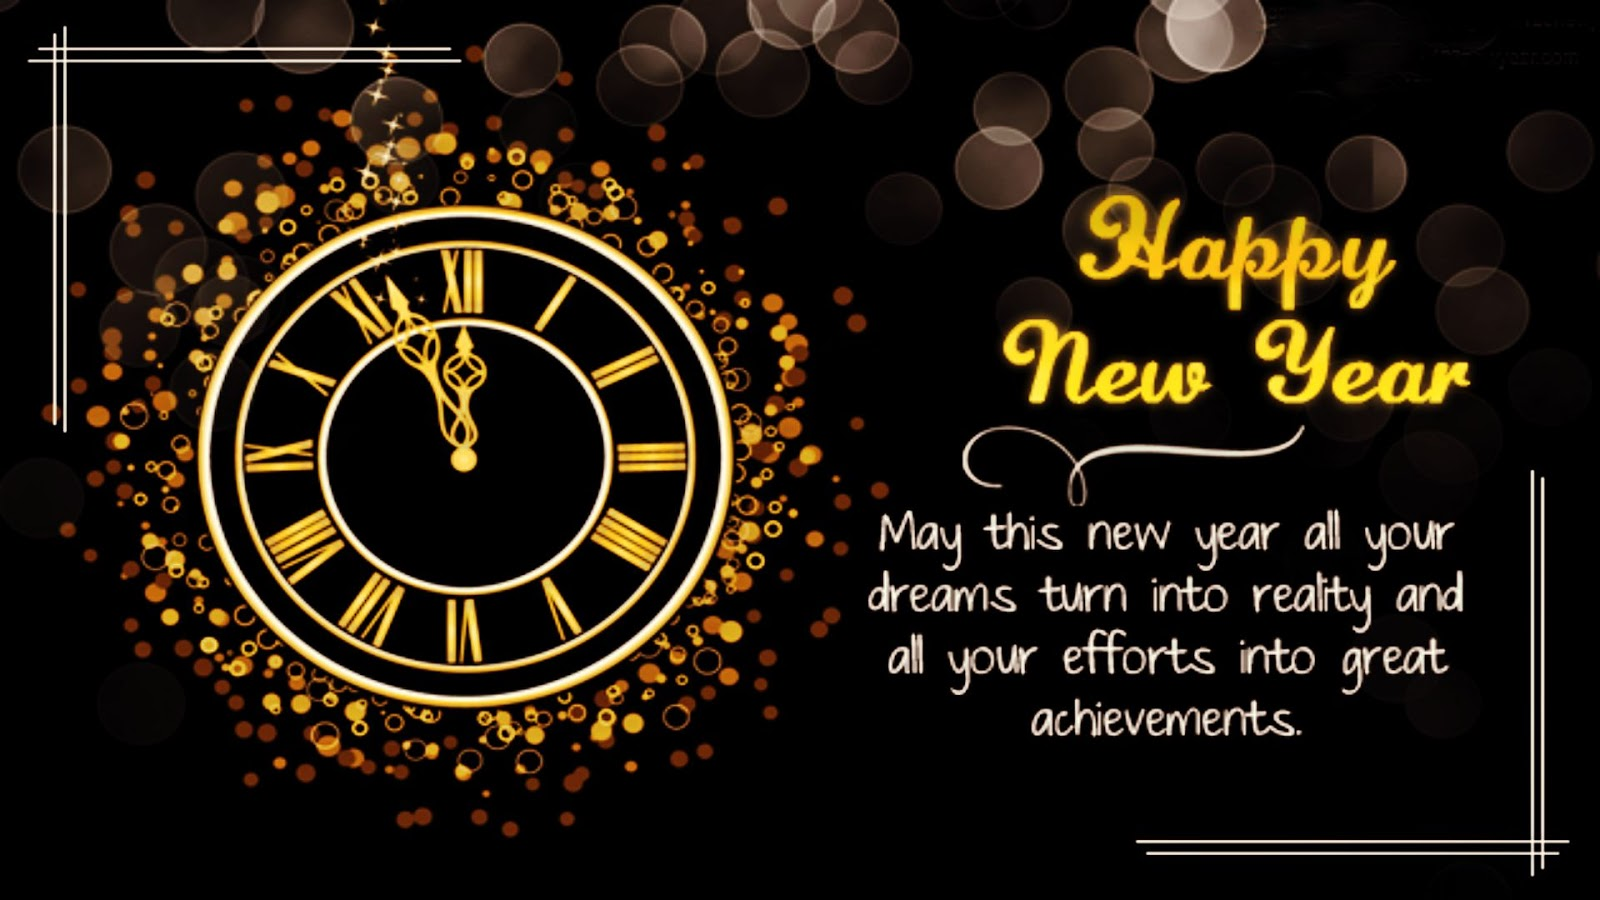 Best happy new year wishes and greetings hamara hindustan happy new year greetings kristyandbryce Images